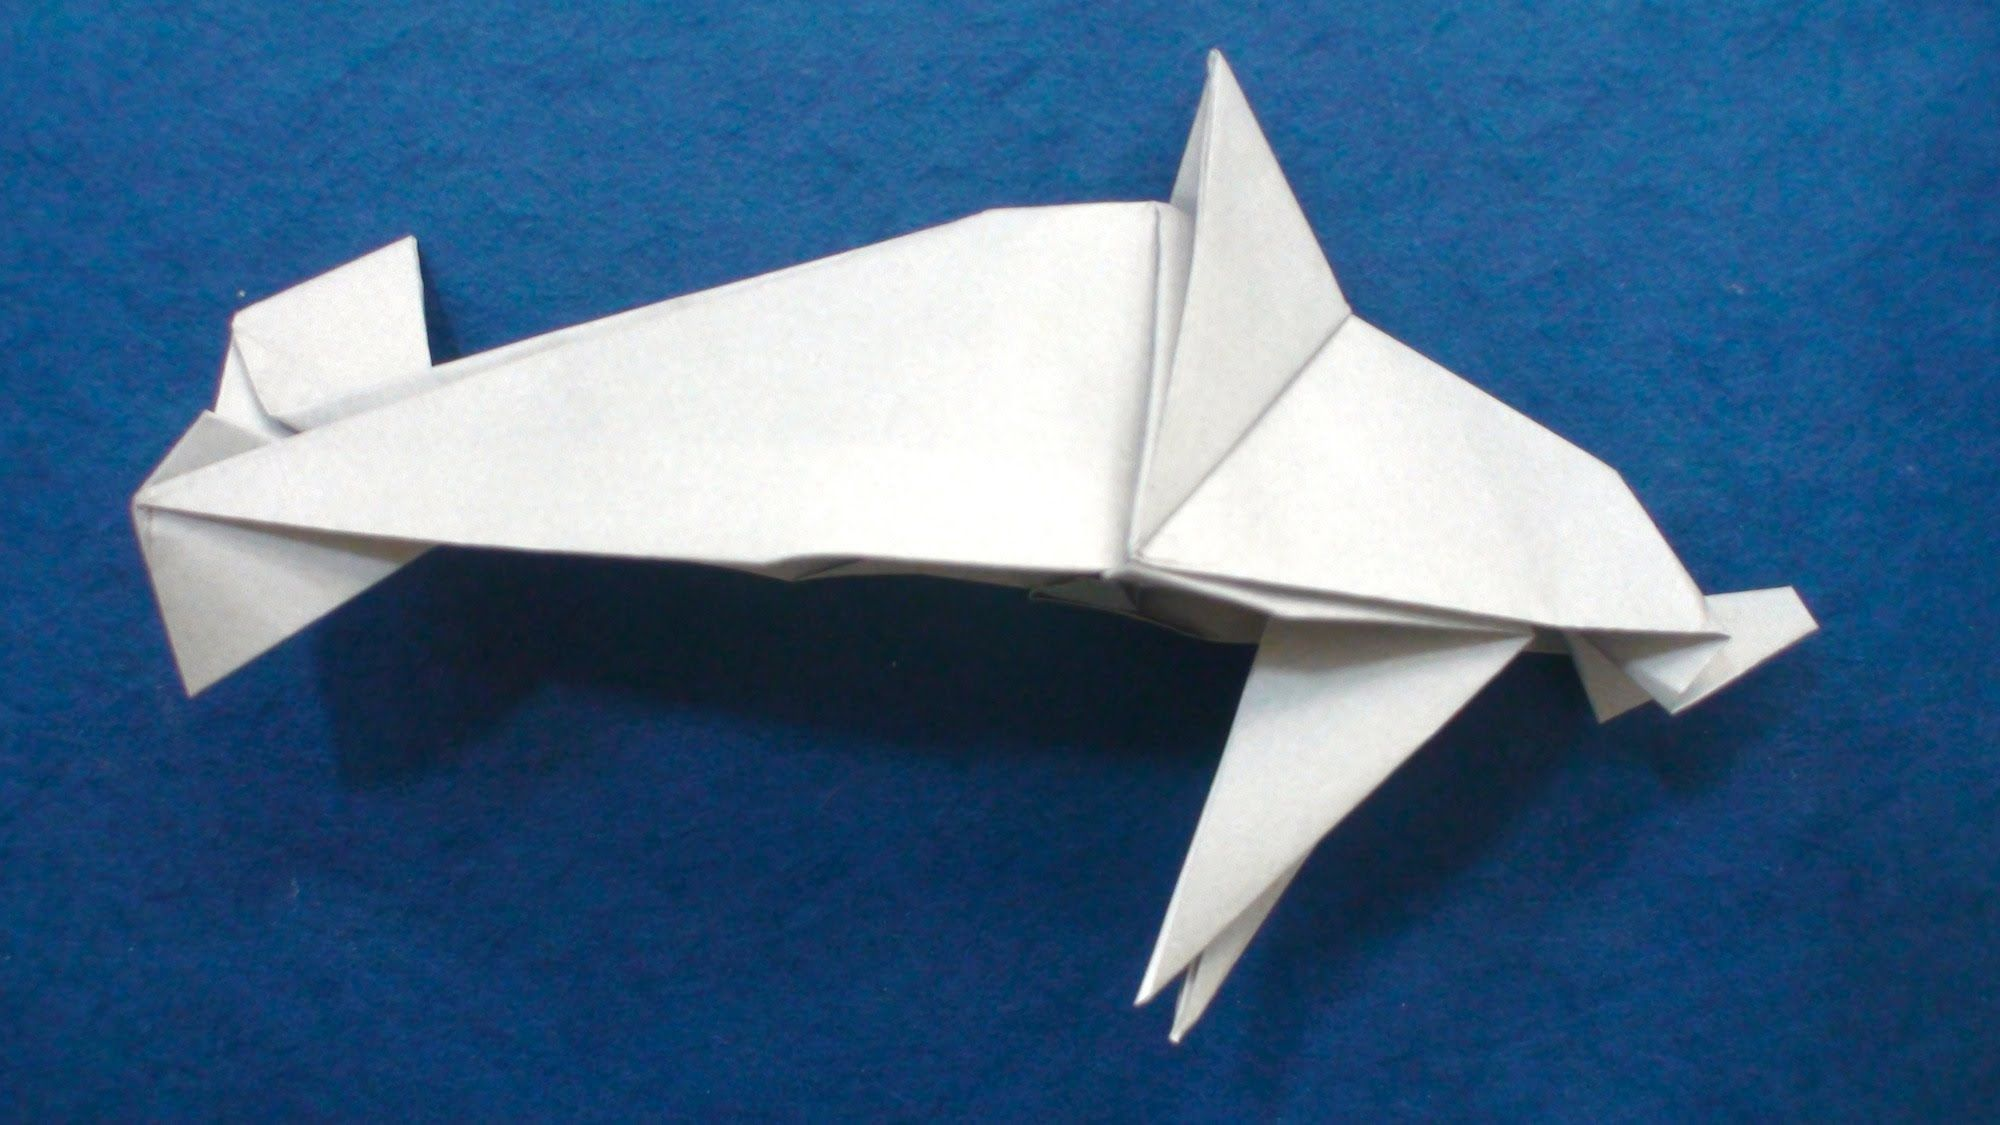 Origami Dolphin (Mindaugas Cesnavicius) - don't follow the video step by step - could form basis for blue shark :-)